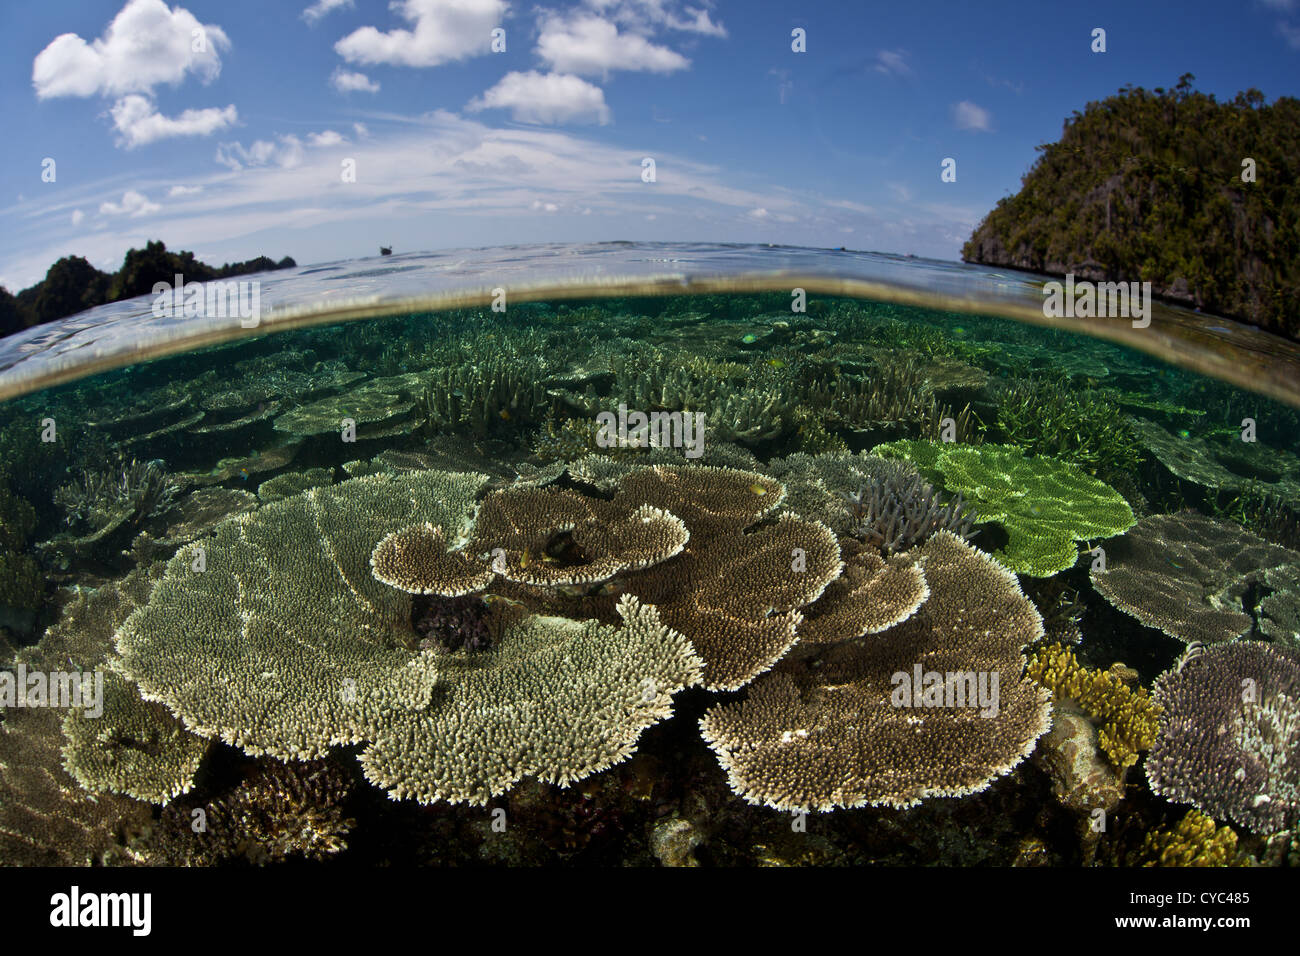 Table corals, Acropora spp., grow on a shallow reef flat between limestone islands in the western Pacific. - Stock Image